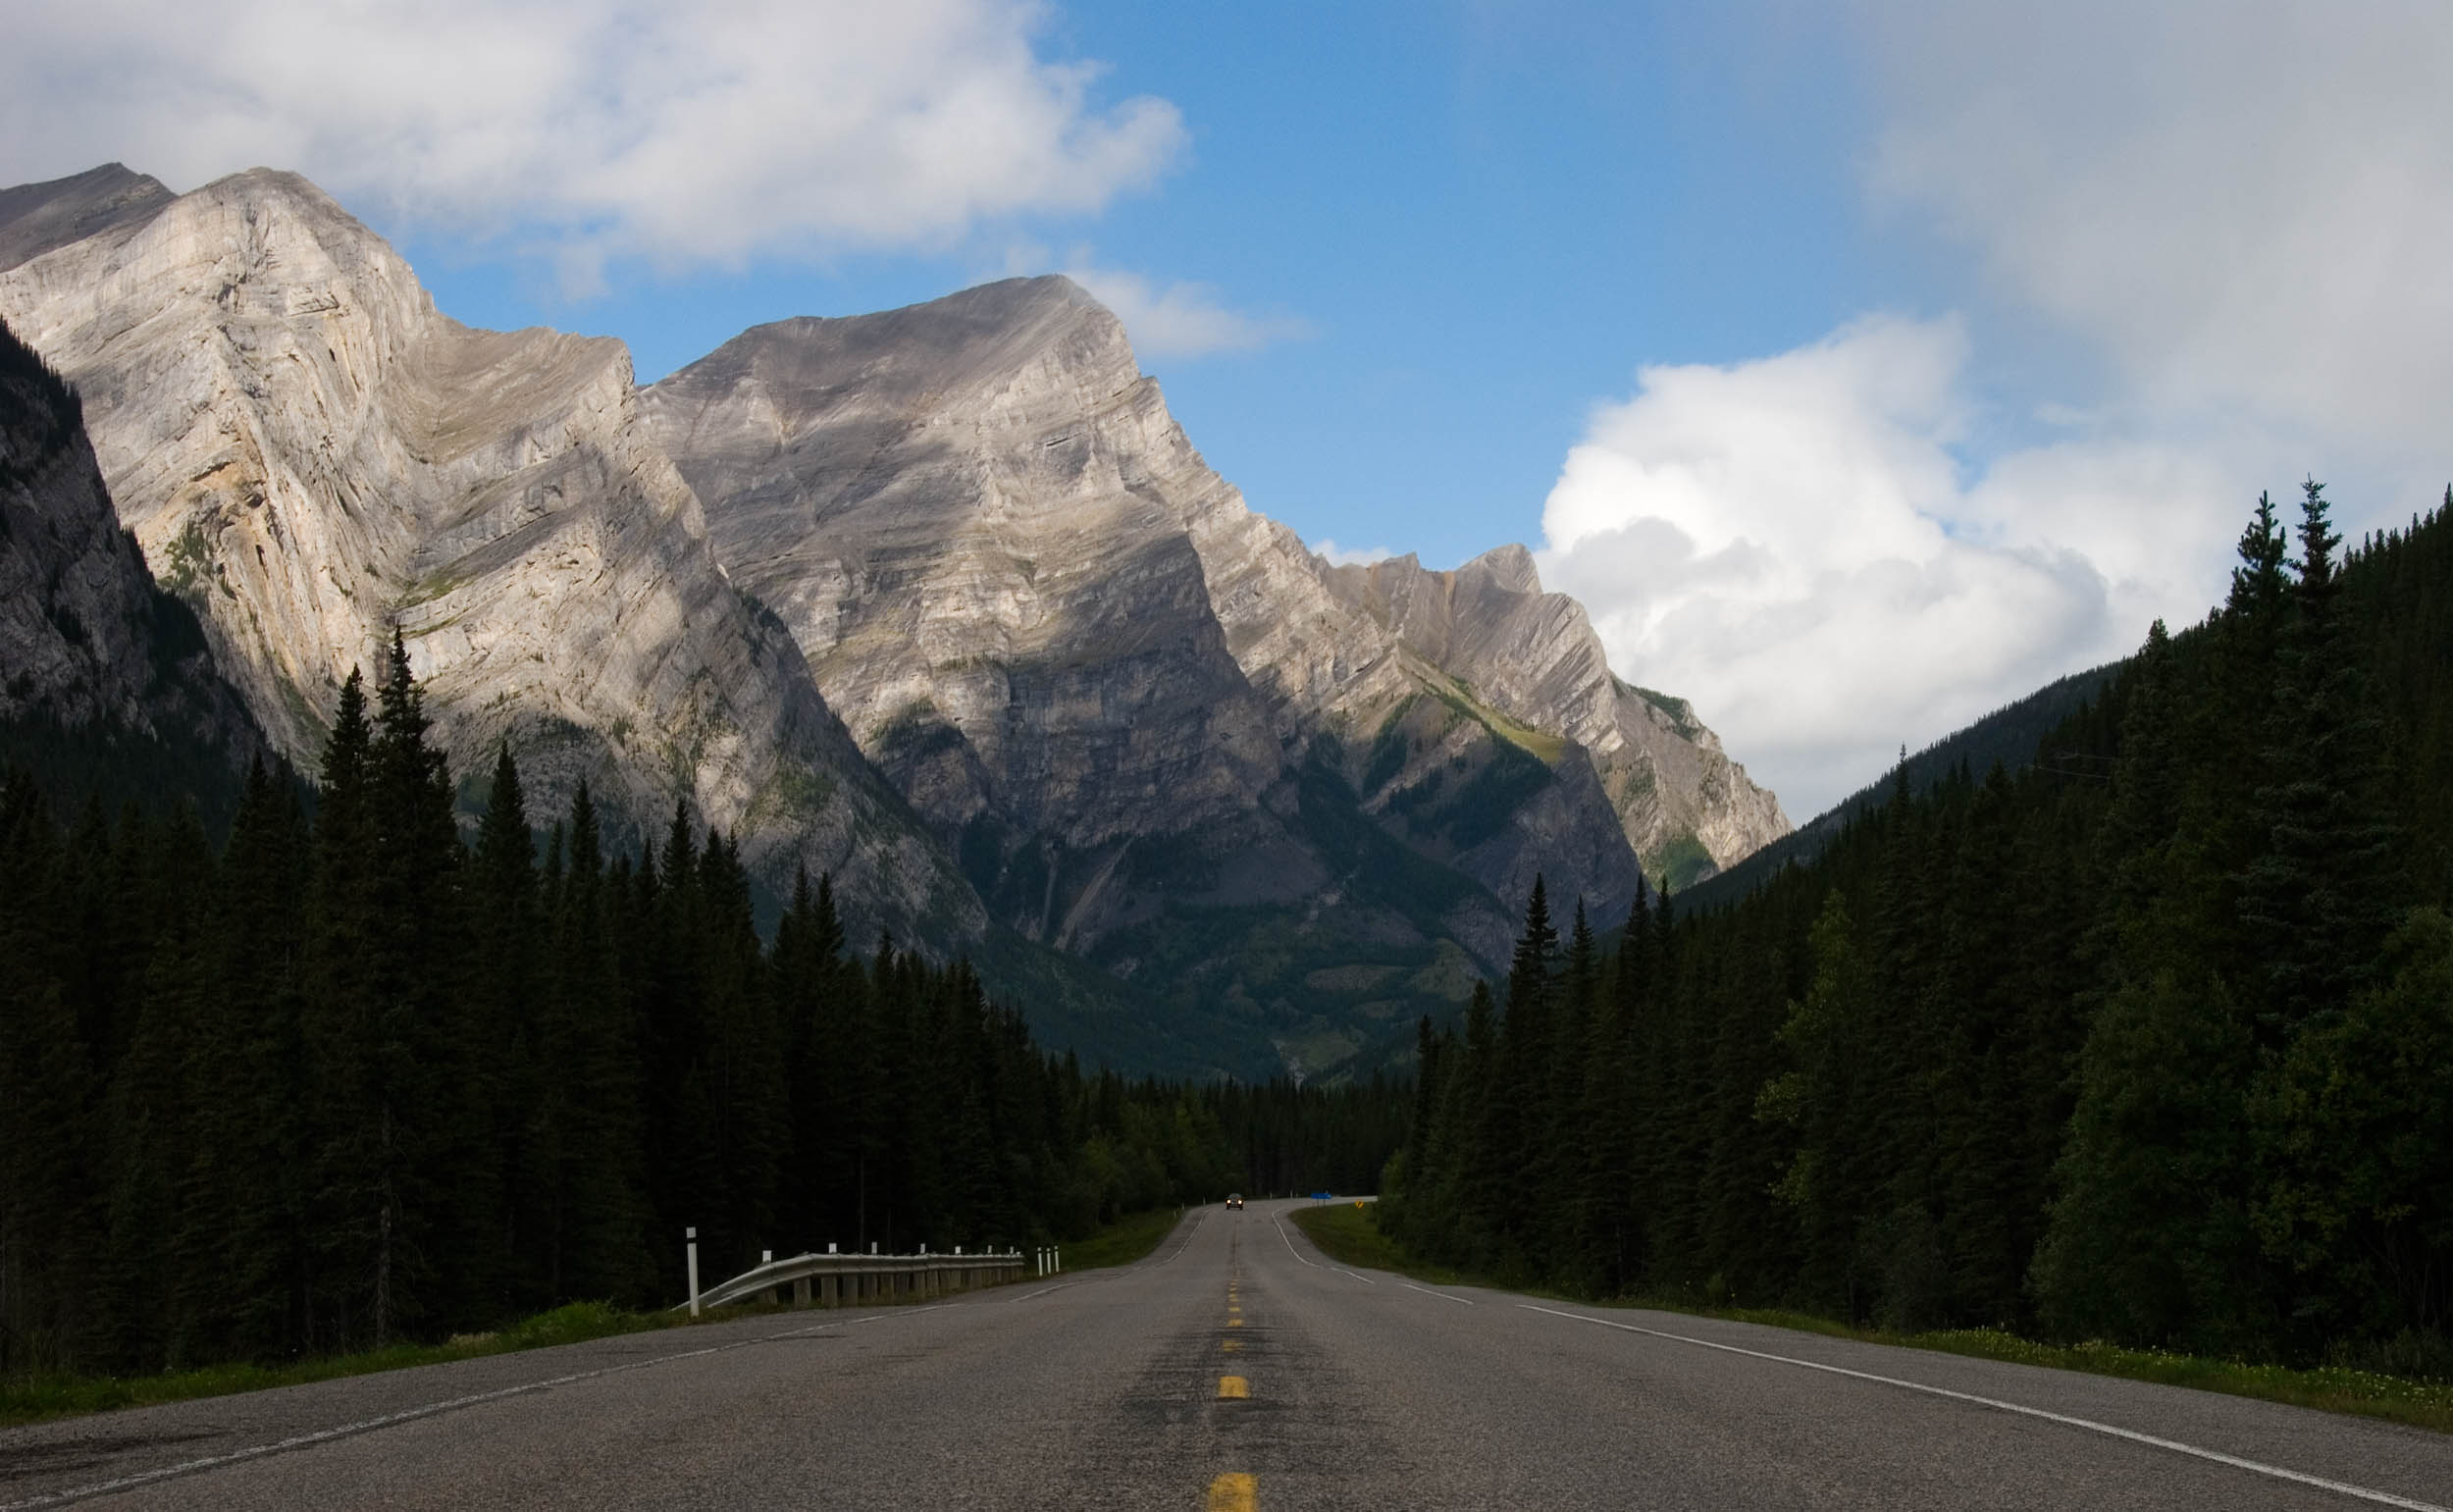 """In 2014 I had the privilege of visiting the Canadian Rockies. As a Canadian, living in Toronto, it left me wondering why I live I don't live in this part of the country (sorry Toronto!). I originally spotted this vista in the rear-view mirror of my car. I immediately pulled over and made this photograph. Since that day, my mantra while travelling has been, """"Don't forget to check the view behind you!""""  This photo is of the Mt. Kidd on the Kananaskis Trail Highway just outside of Canmore, Alberta."""